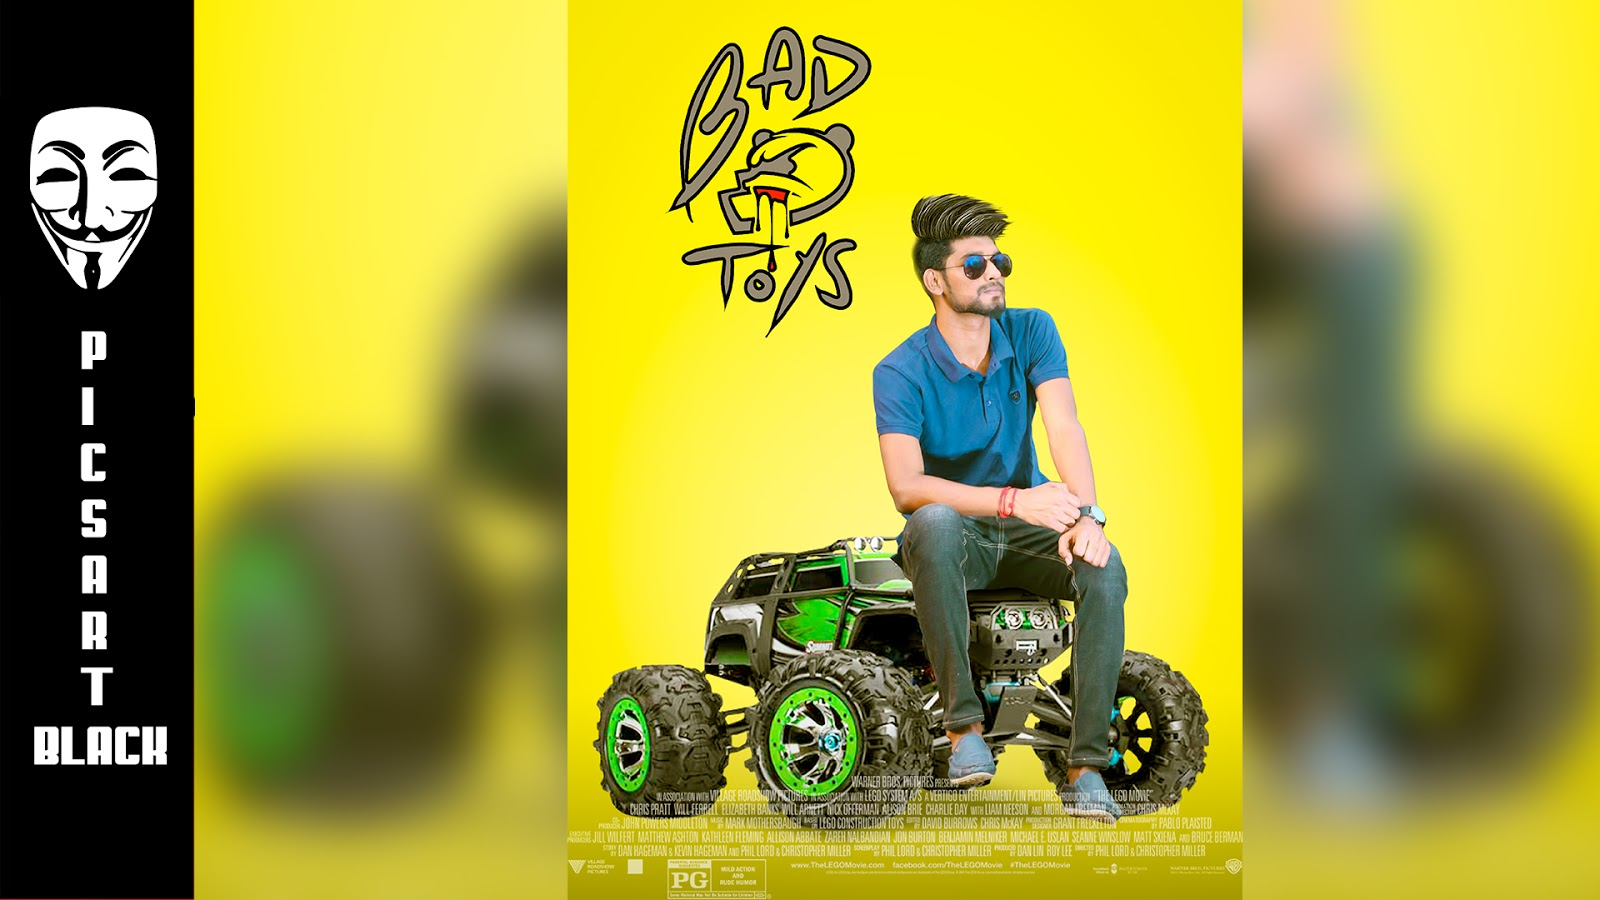 BAD TOY MANIPULATION EDITING PNG IMAGE DOWNLOAD